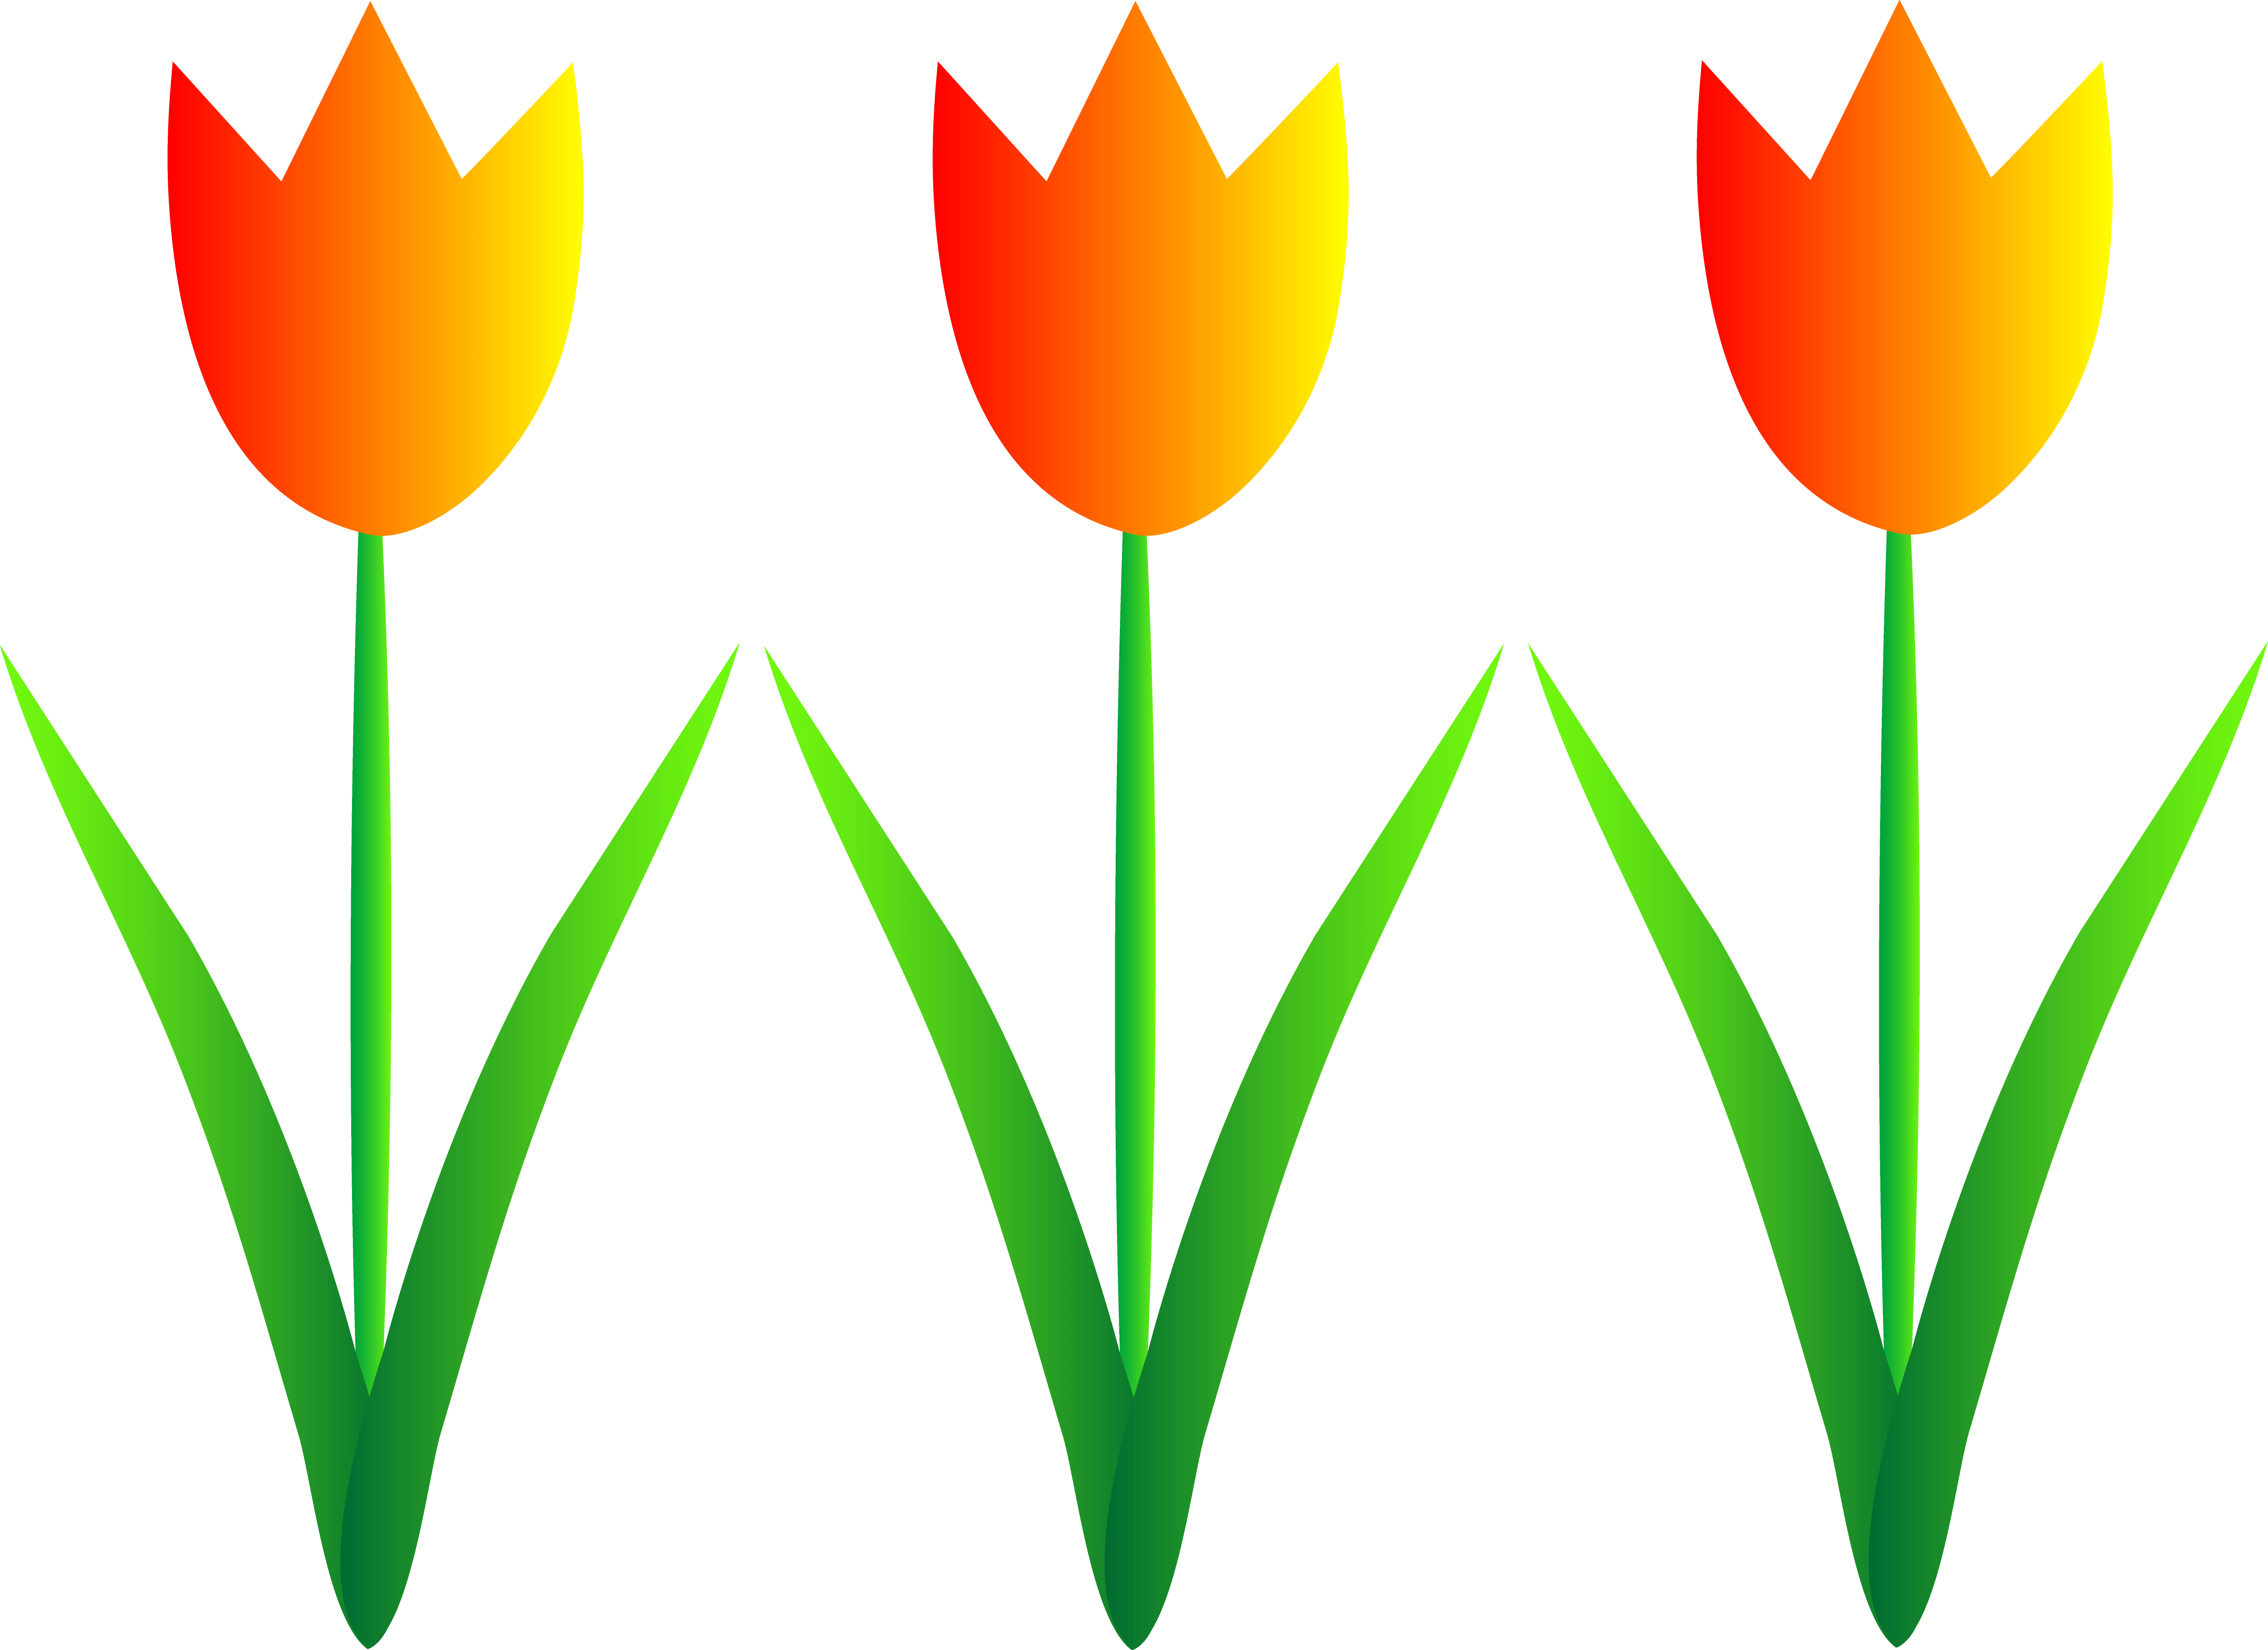 Spring flowers border png. Flower clipart at getdrawings